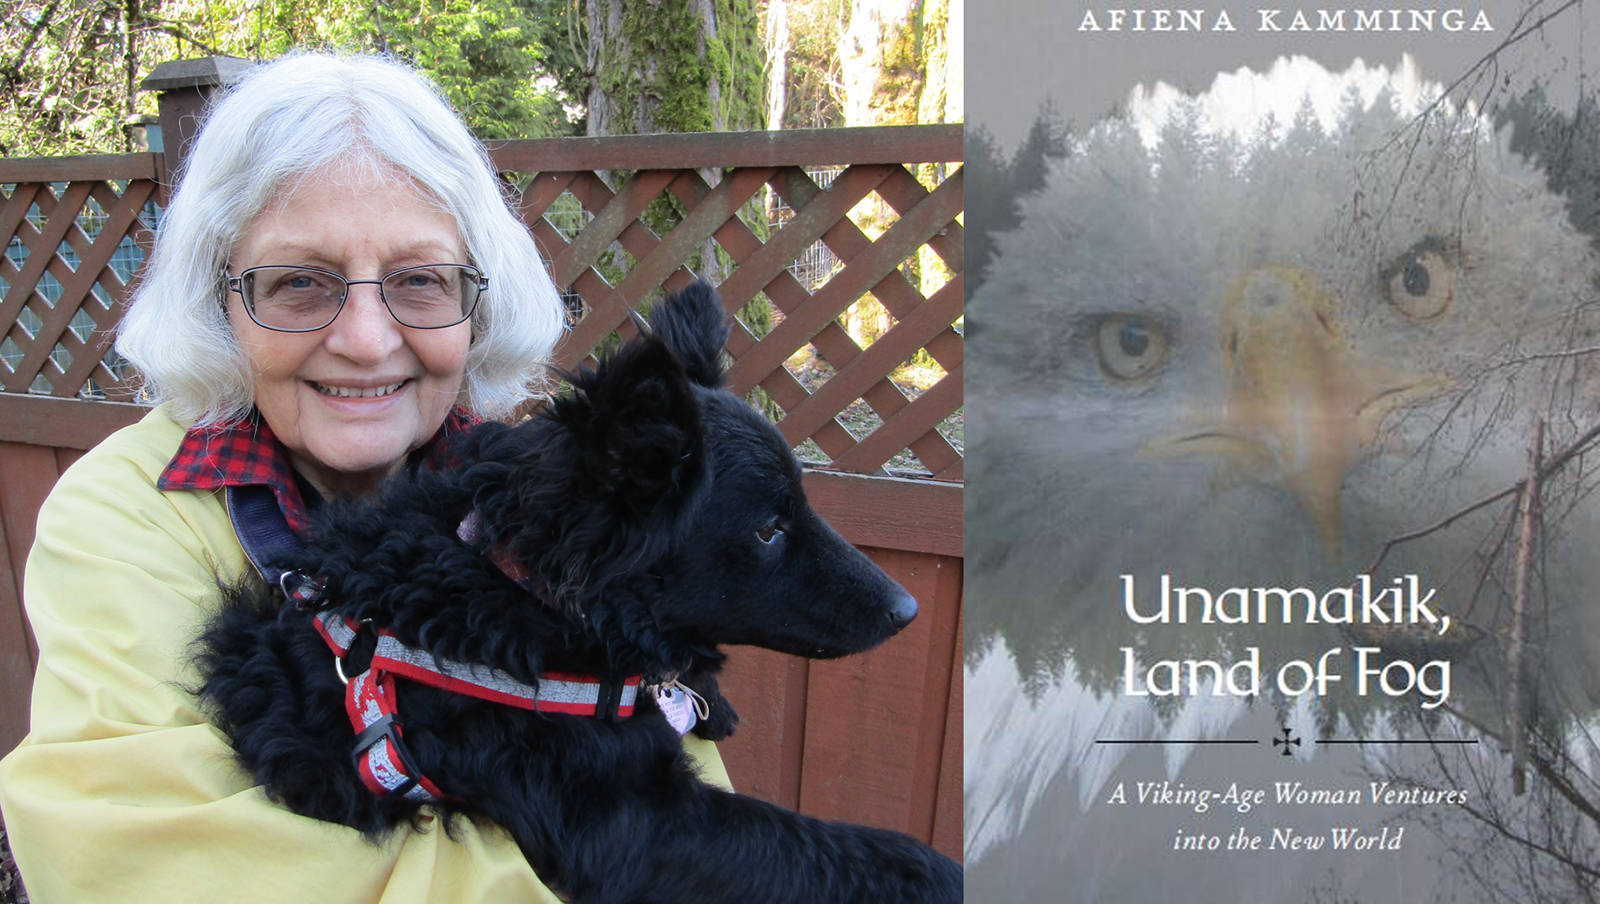 Nanaimo author Afiena Kamminga presents her latest book, 'Unamakik, Land of Fog.' (Photo courtesy Hans Larsen)